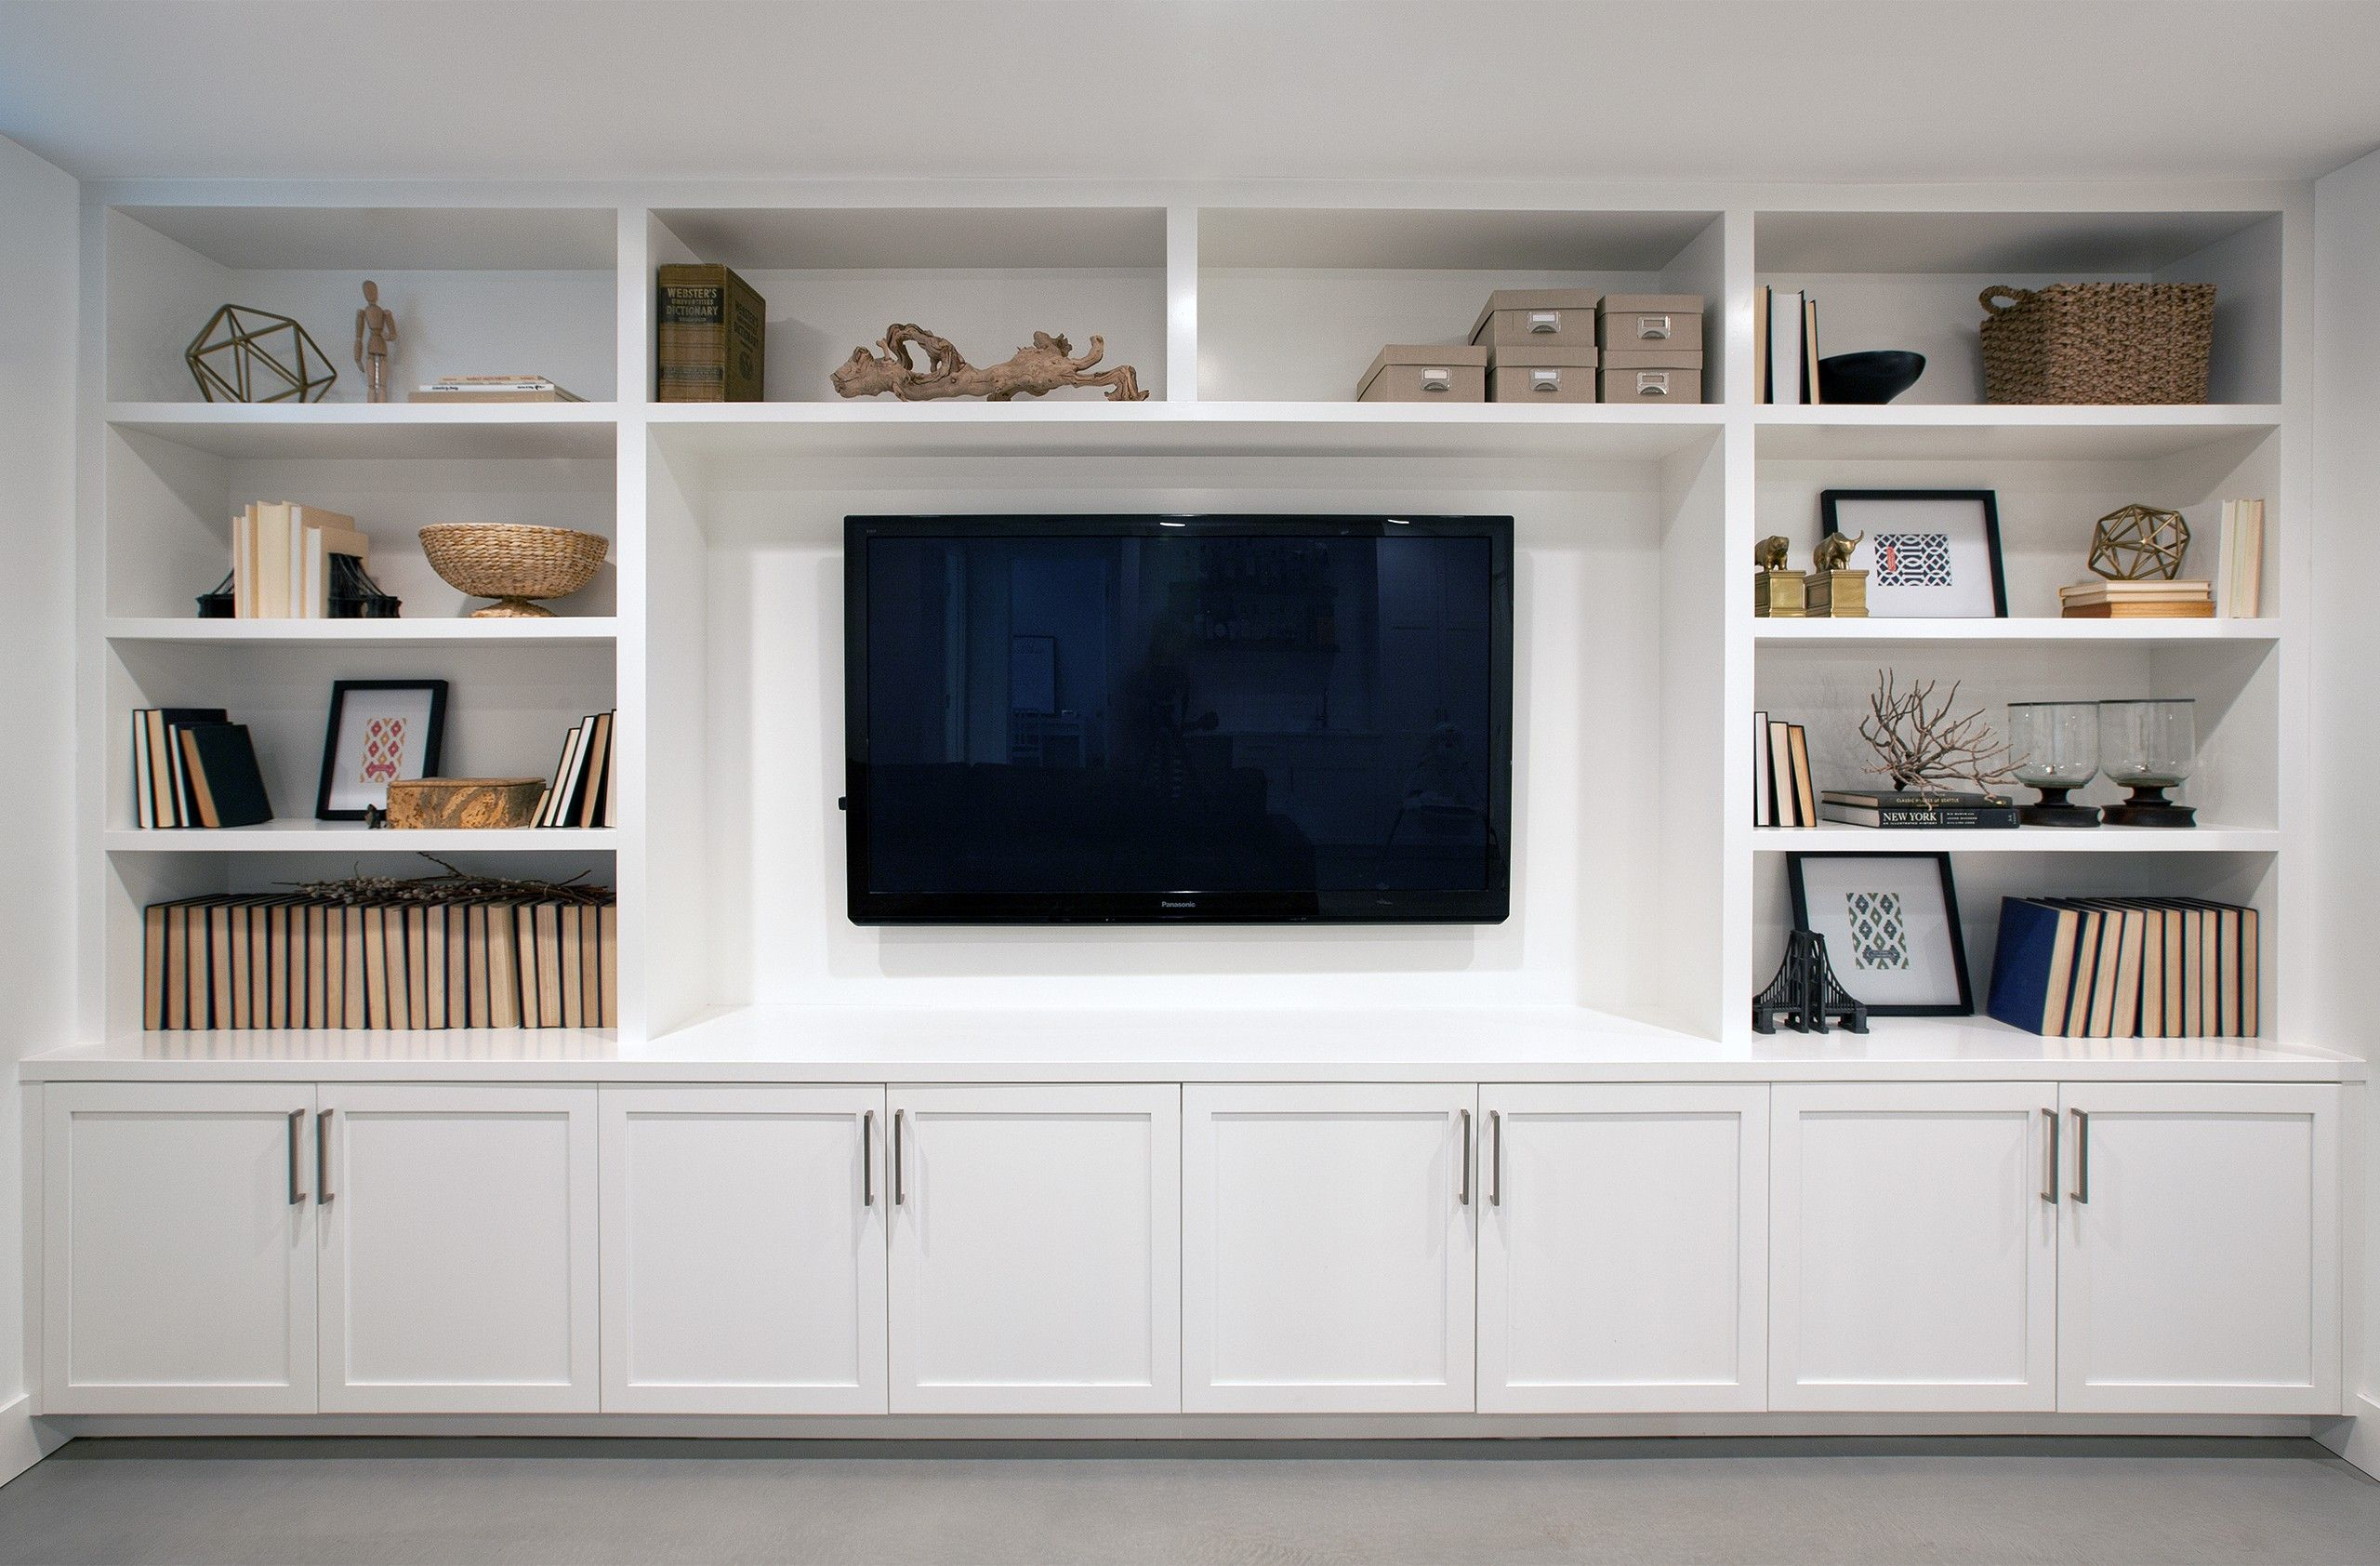 Family Room Built In Cabinets